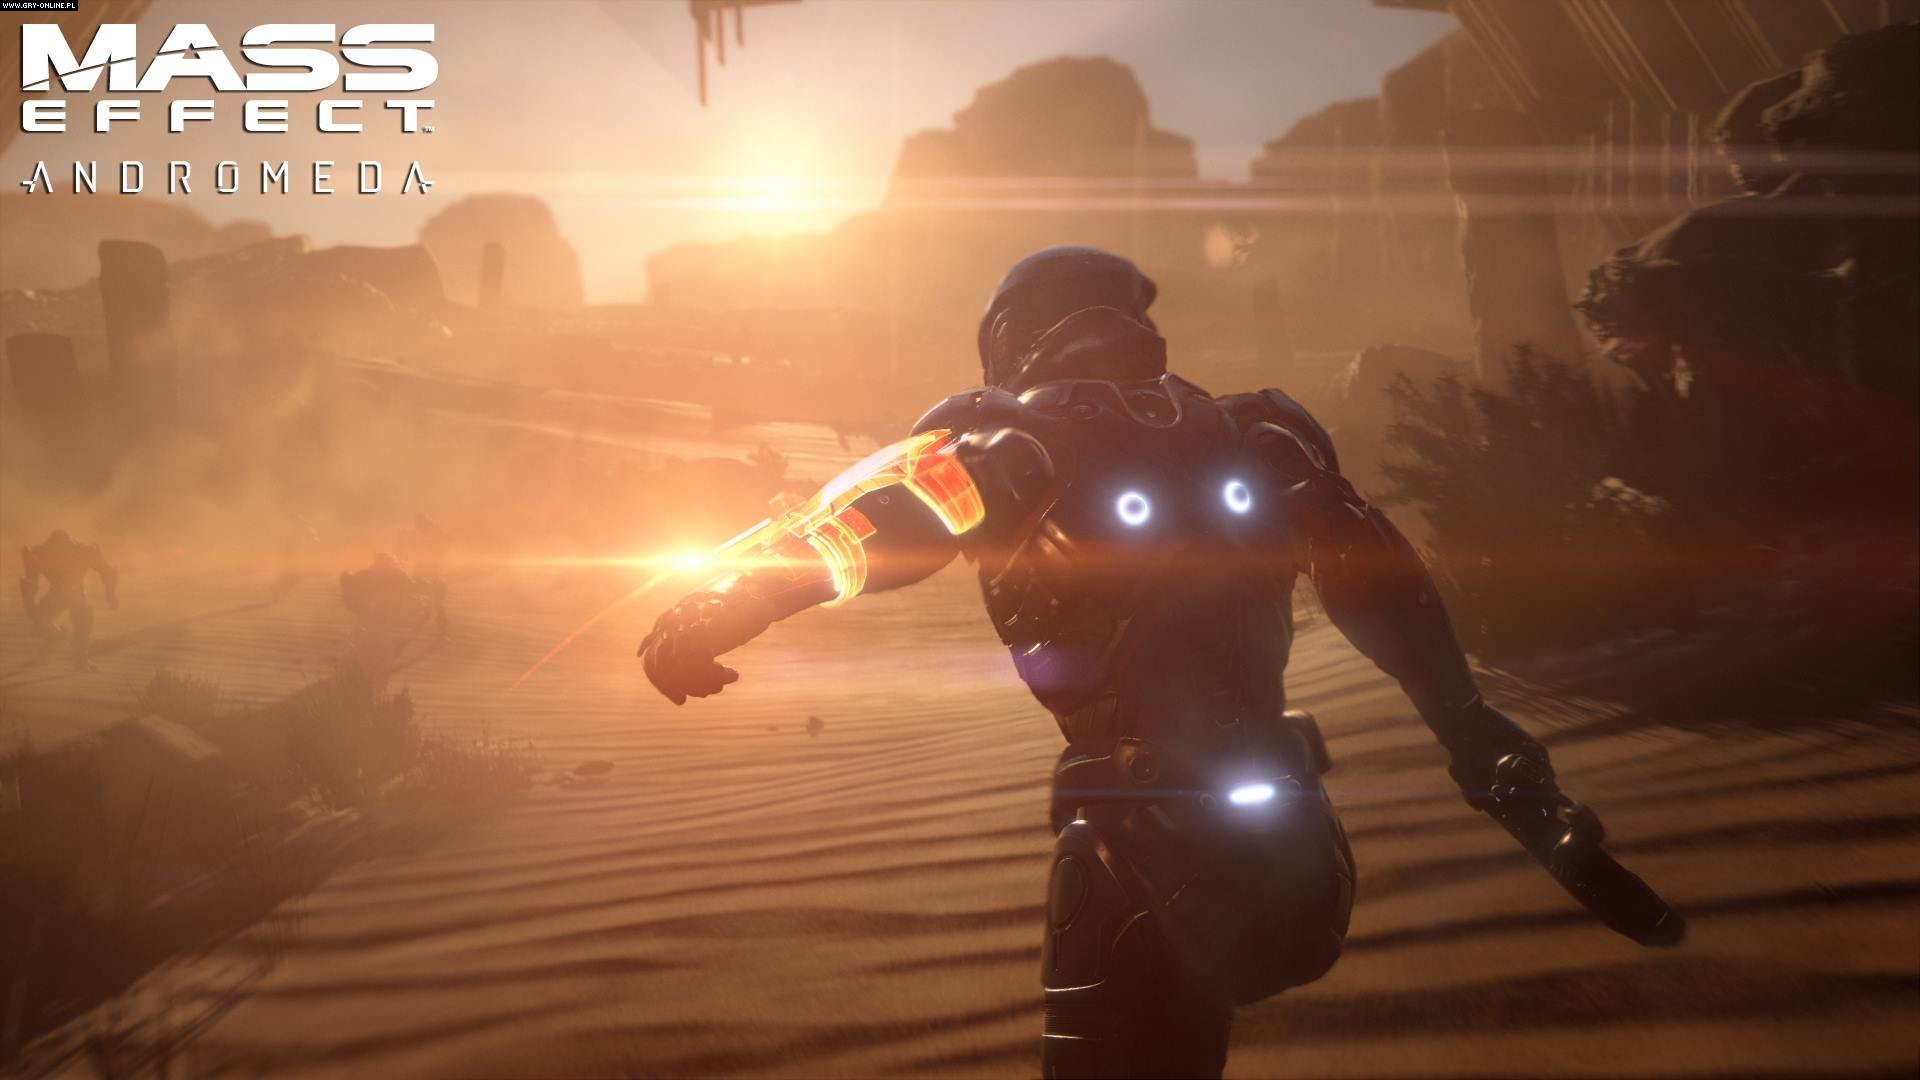 Mass Effect: Andromeda PC, PS4, XONE Games Image 89/97, BioWare Corporation, Electronic Arts Inc.